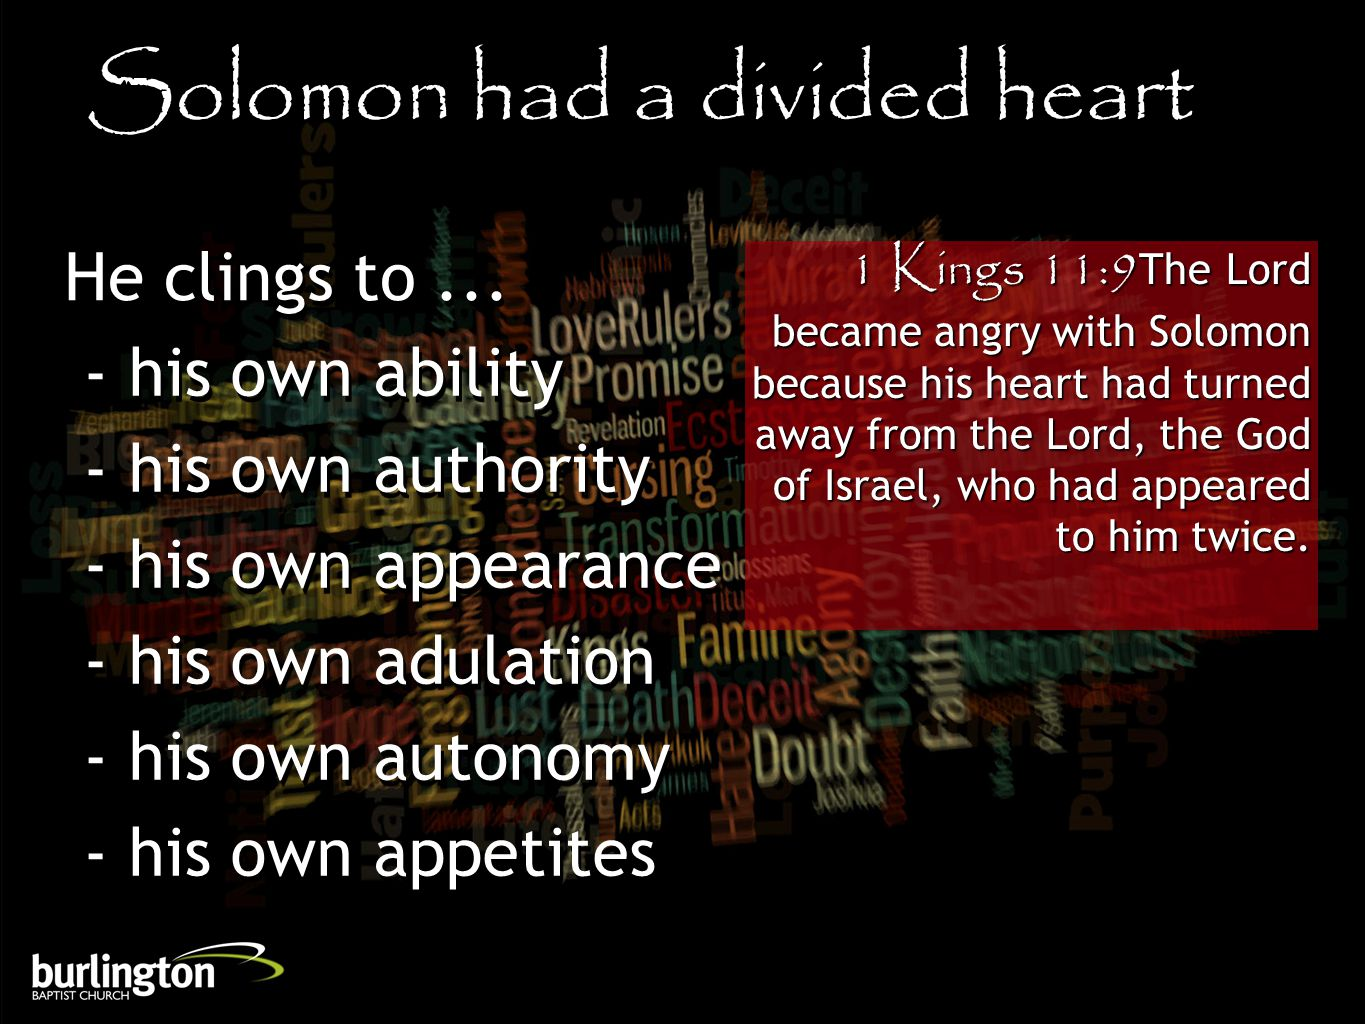 1 Kings 11:9The Lord became angry with Solomon because his heart had turned away from the Lord, the God of Israel, who had appeared to him twice.